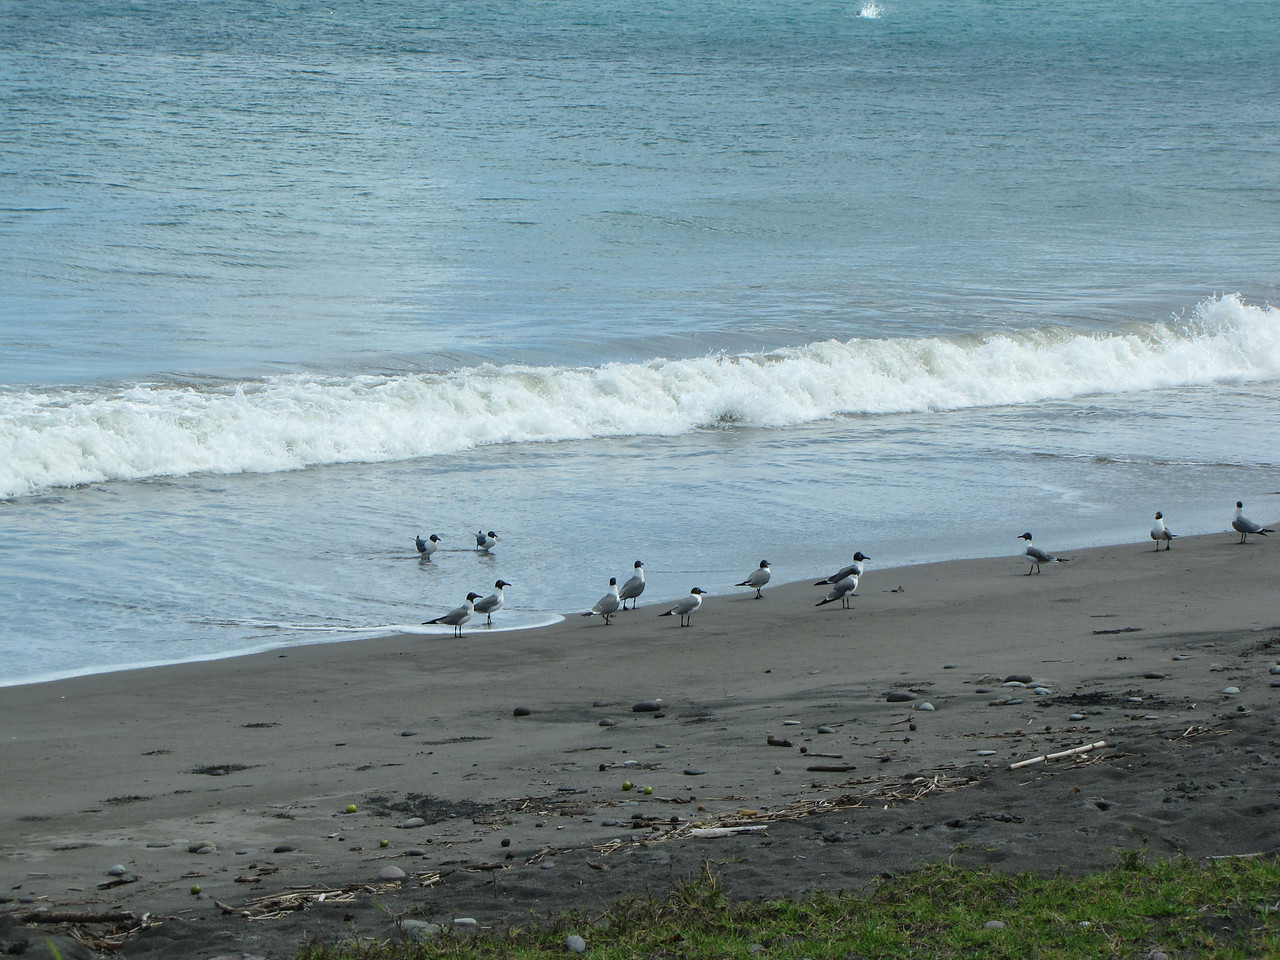 Gulls on the beach.